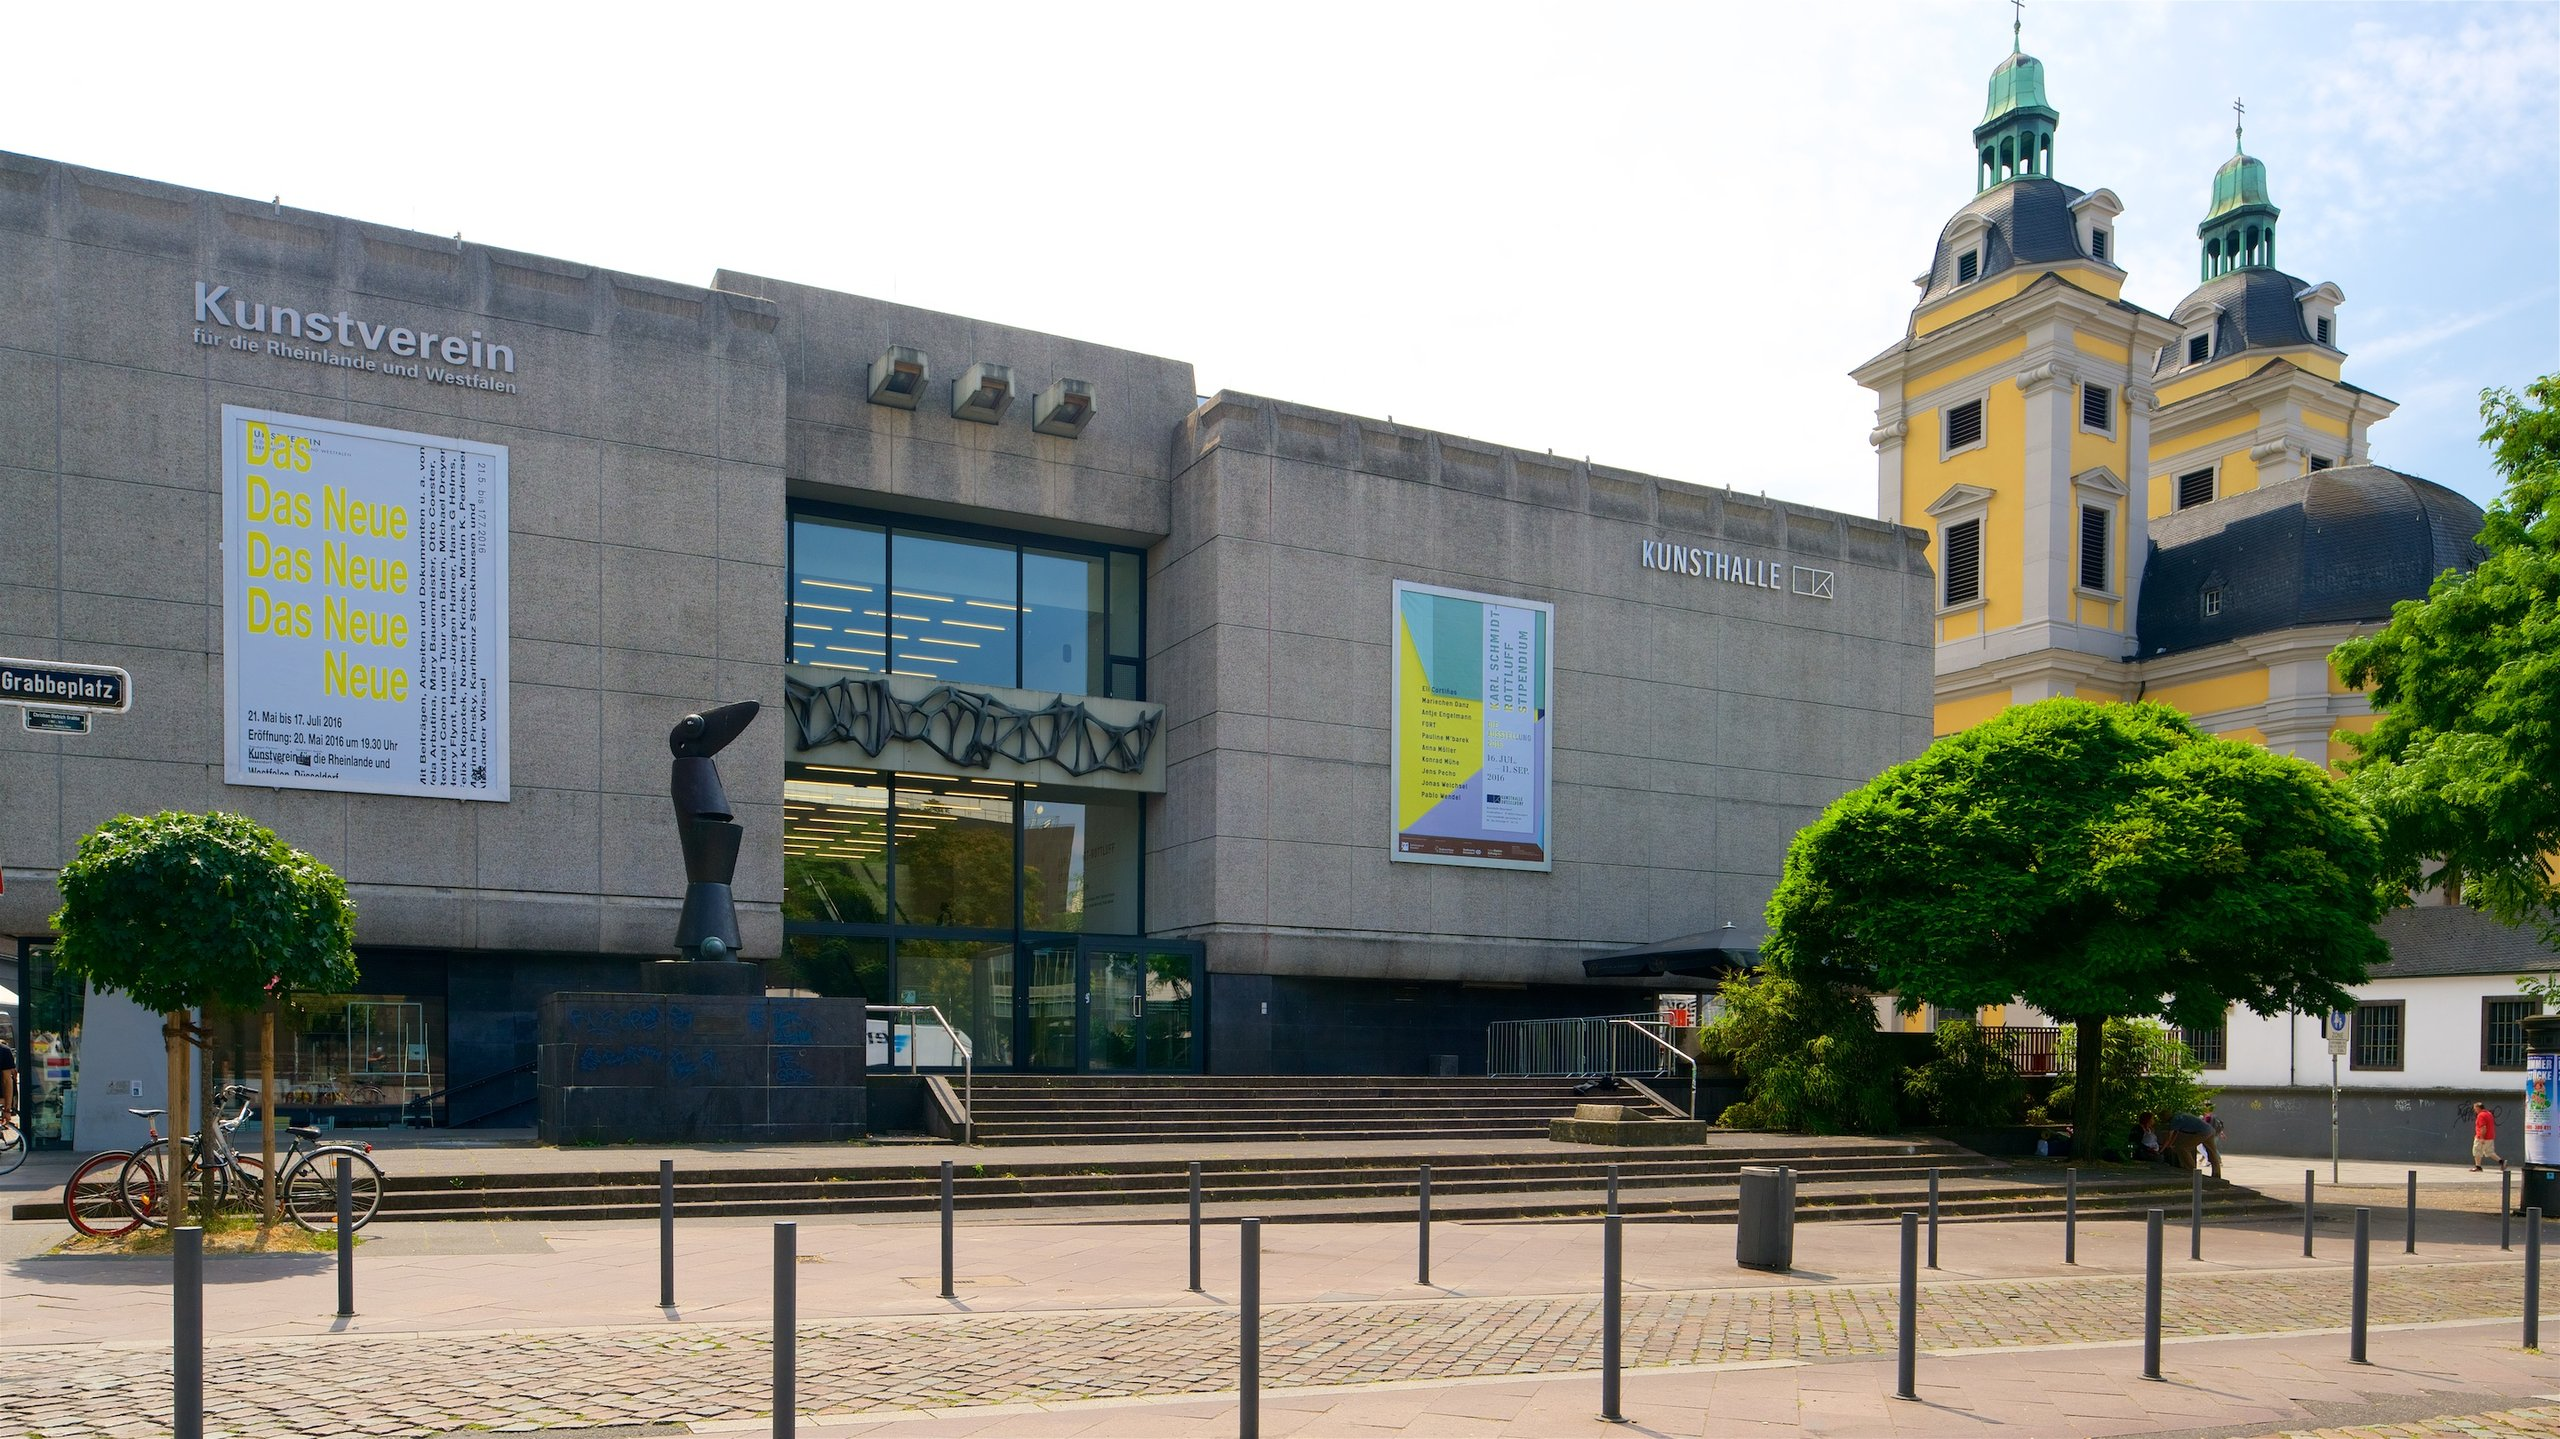 Top 10 Hotels Closest To Kunsthalle Duesseldorf In Dusseldorf Old